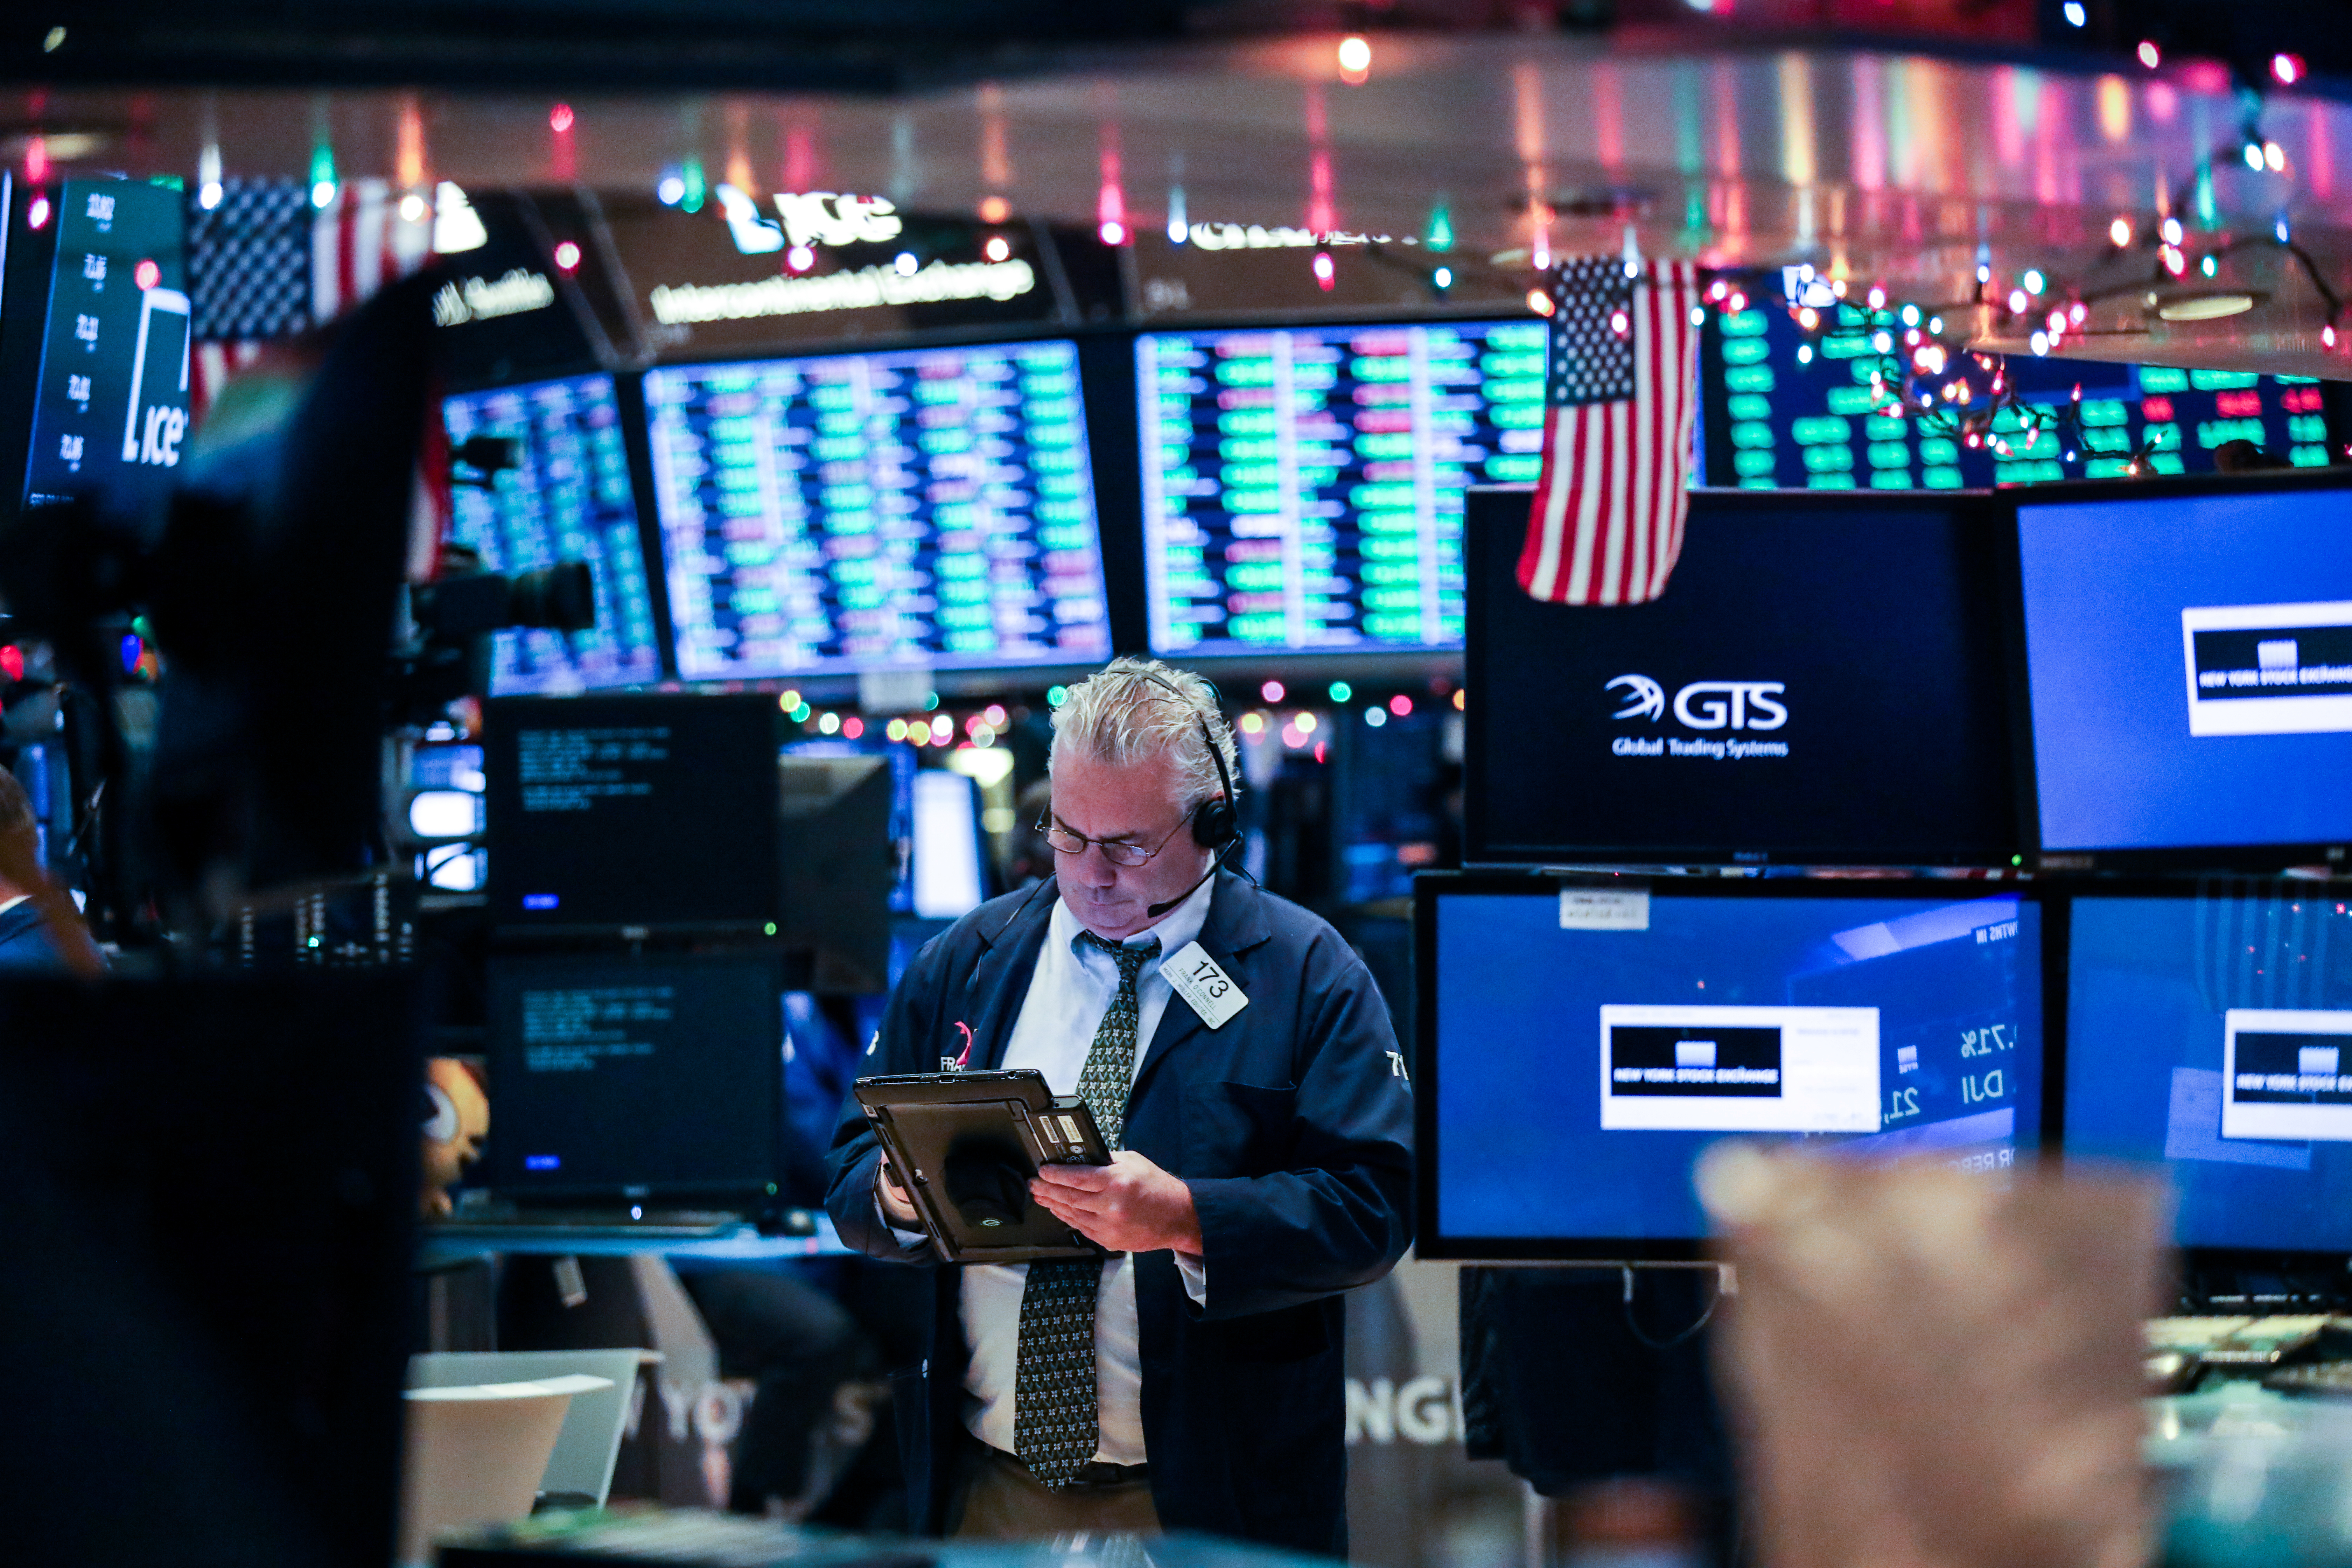 A trader works on the floor of the New York Stock Exchange (NYSE) in New York, U.S., December 26, 2018. REUTERS/Jeenah Moon